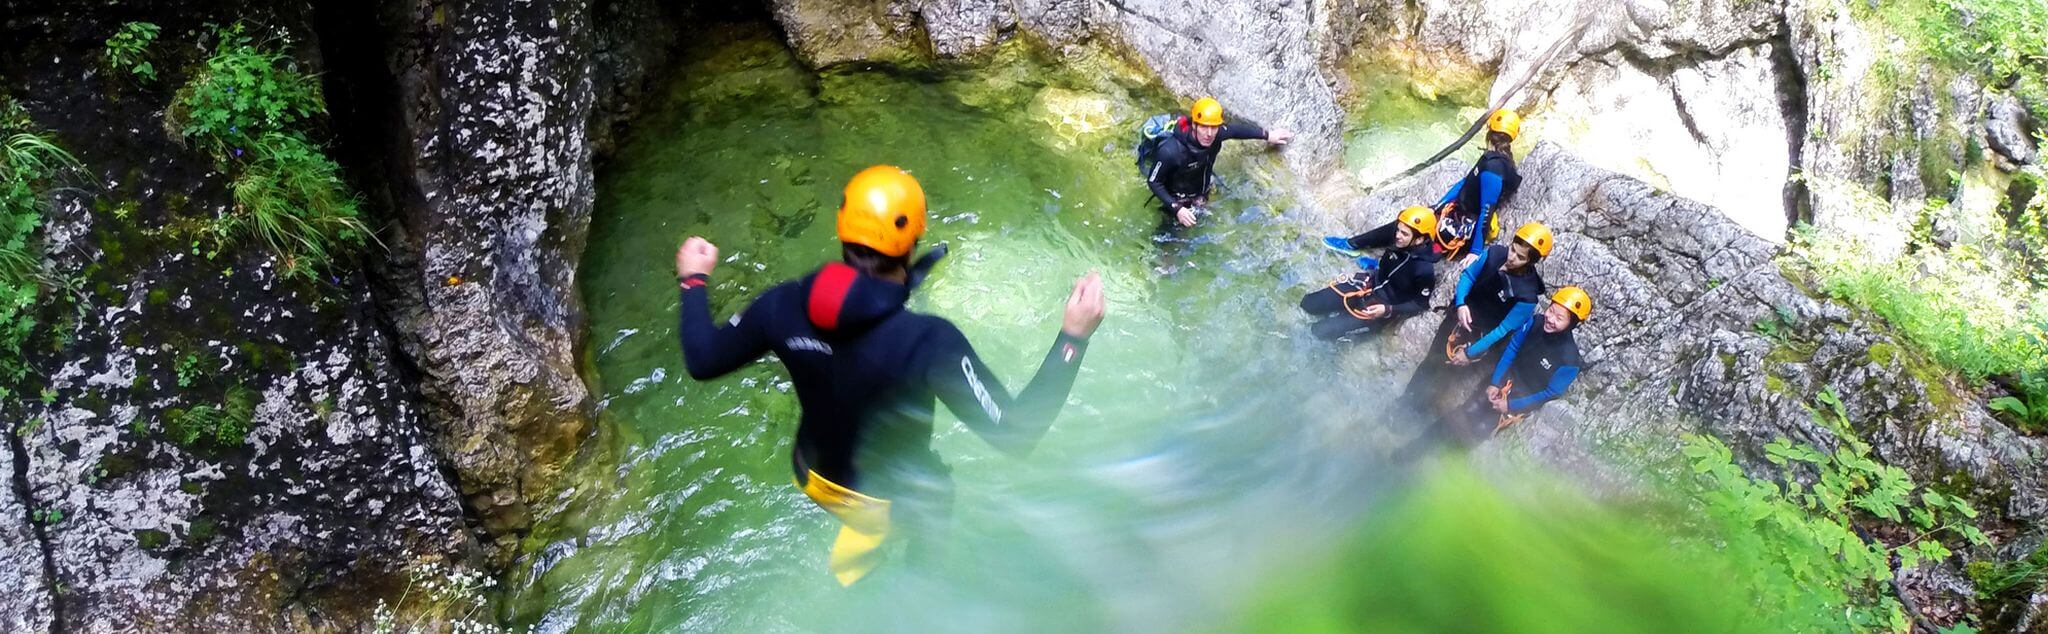 Canyoning in Albacete